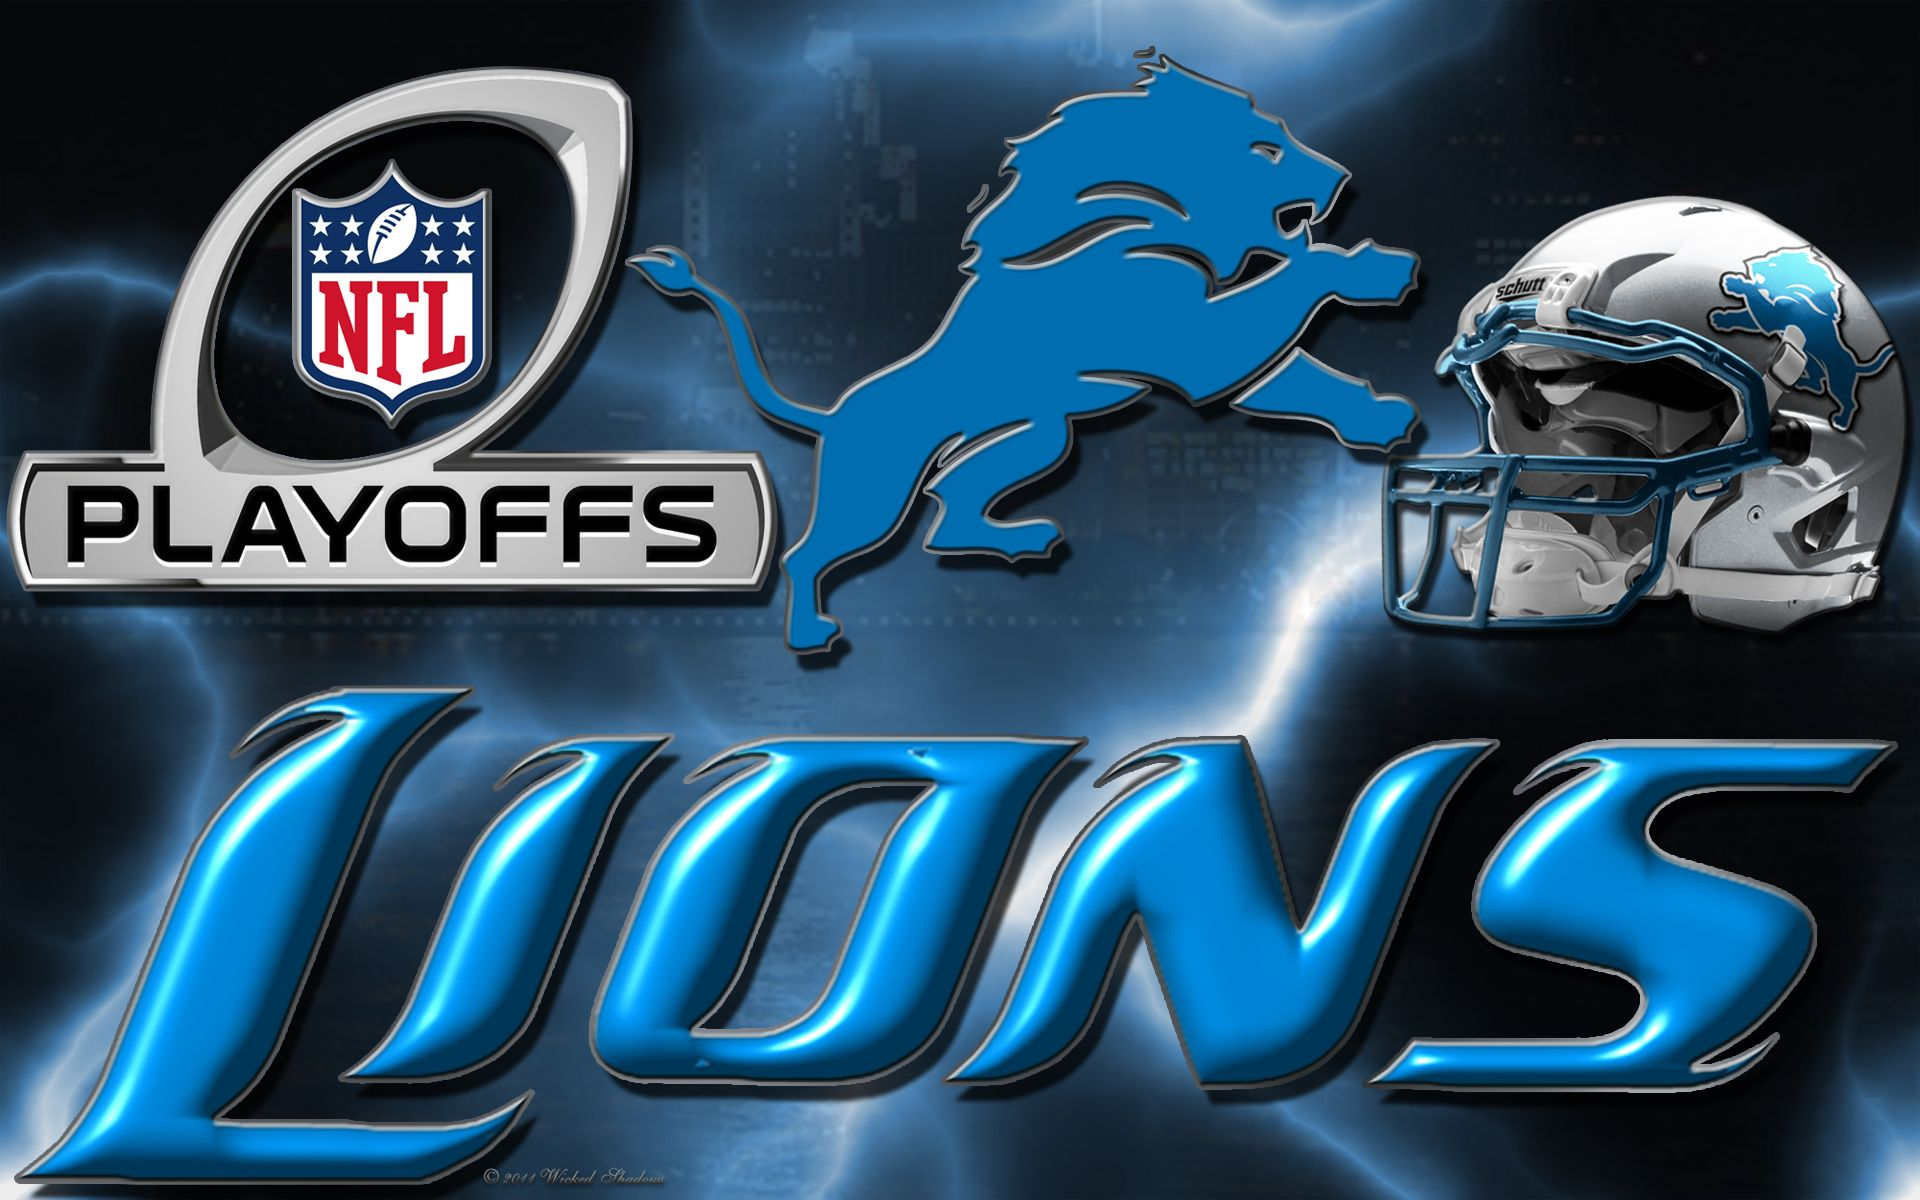 Wallpapers By Wicked Shadows - Lions Football , HD Wallpaper & Backgrounds